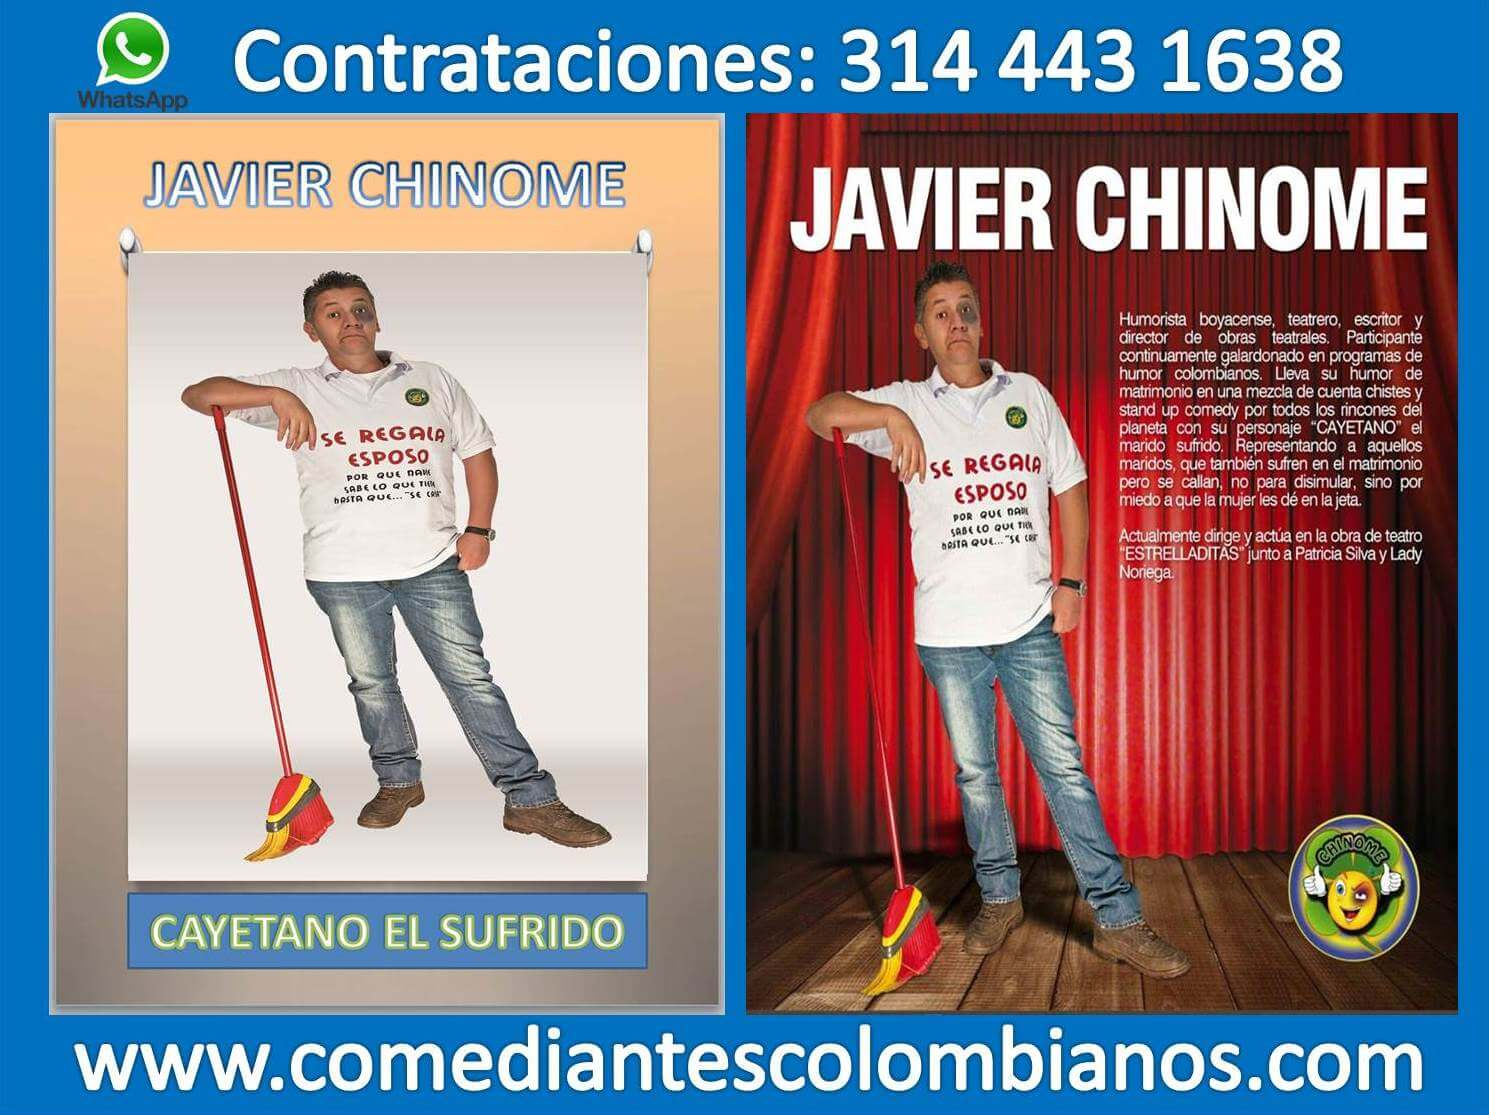 javier chinome sabados felices